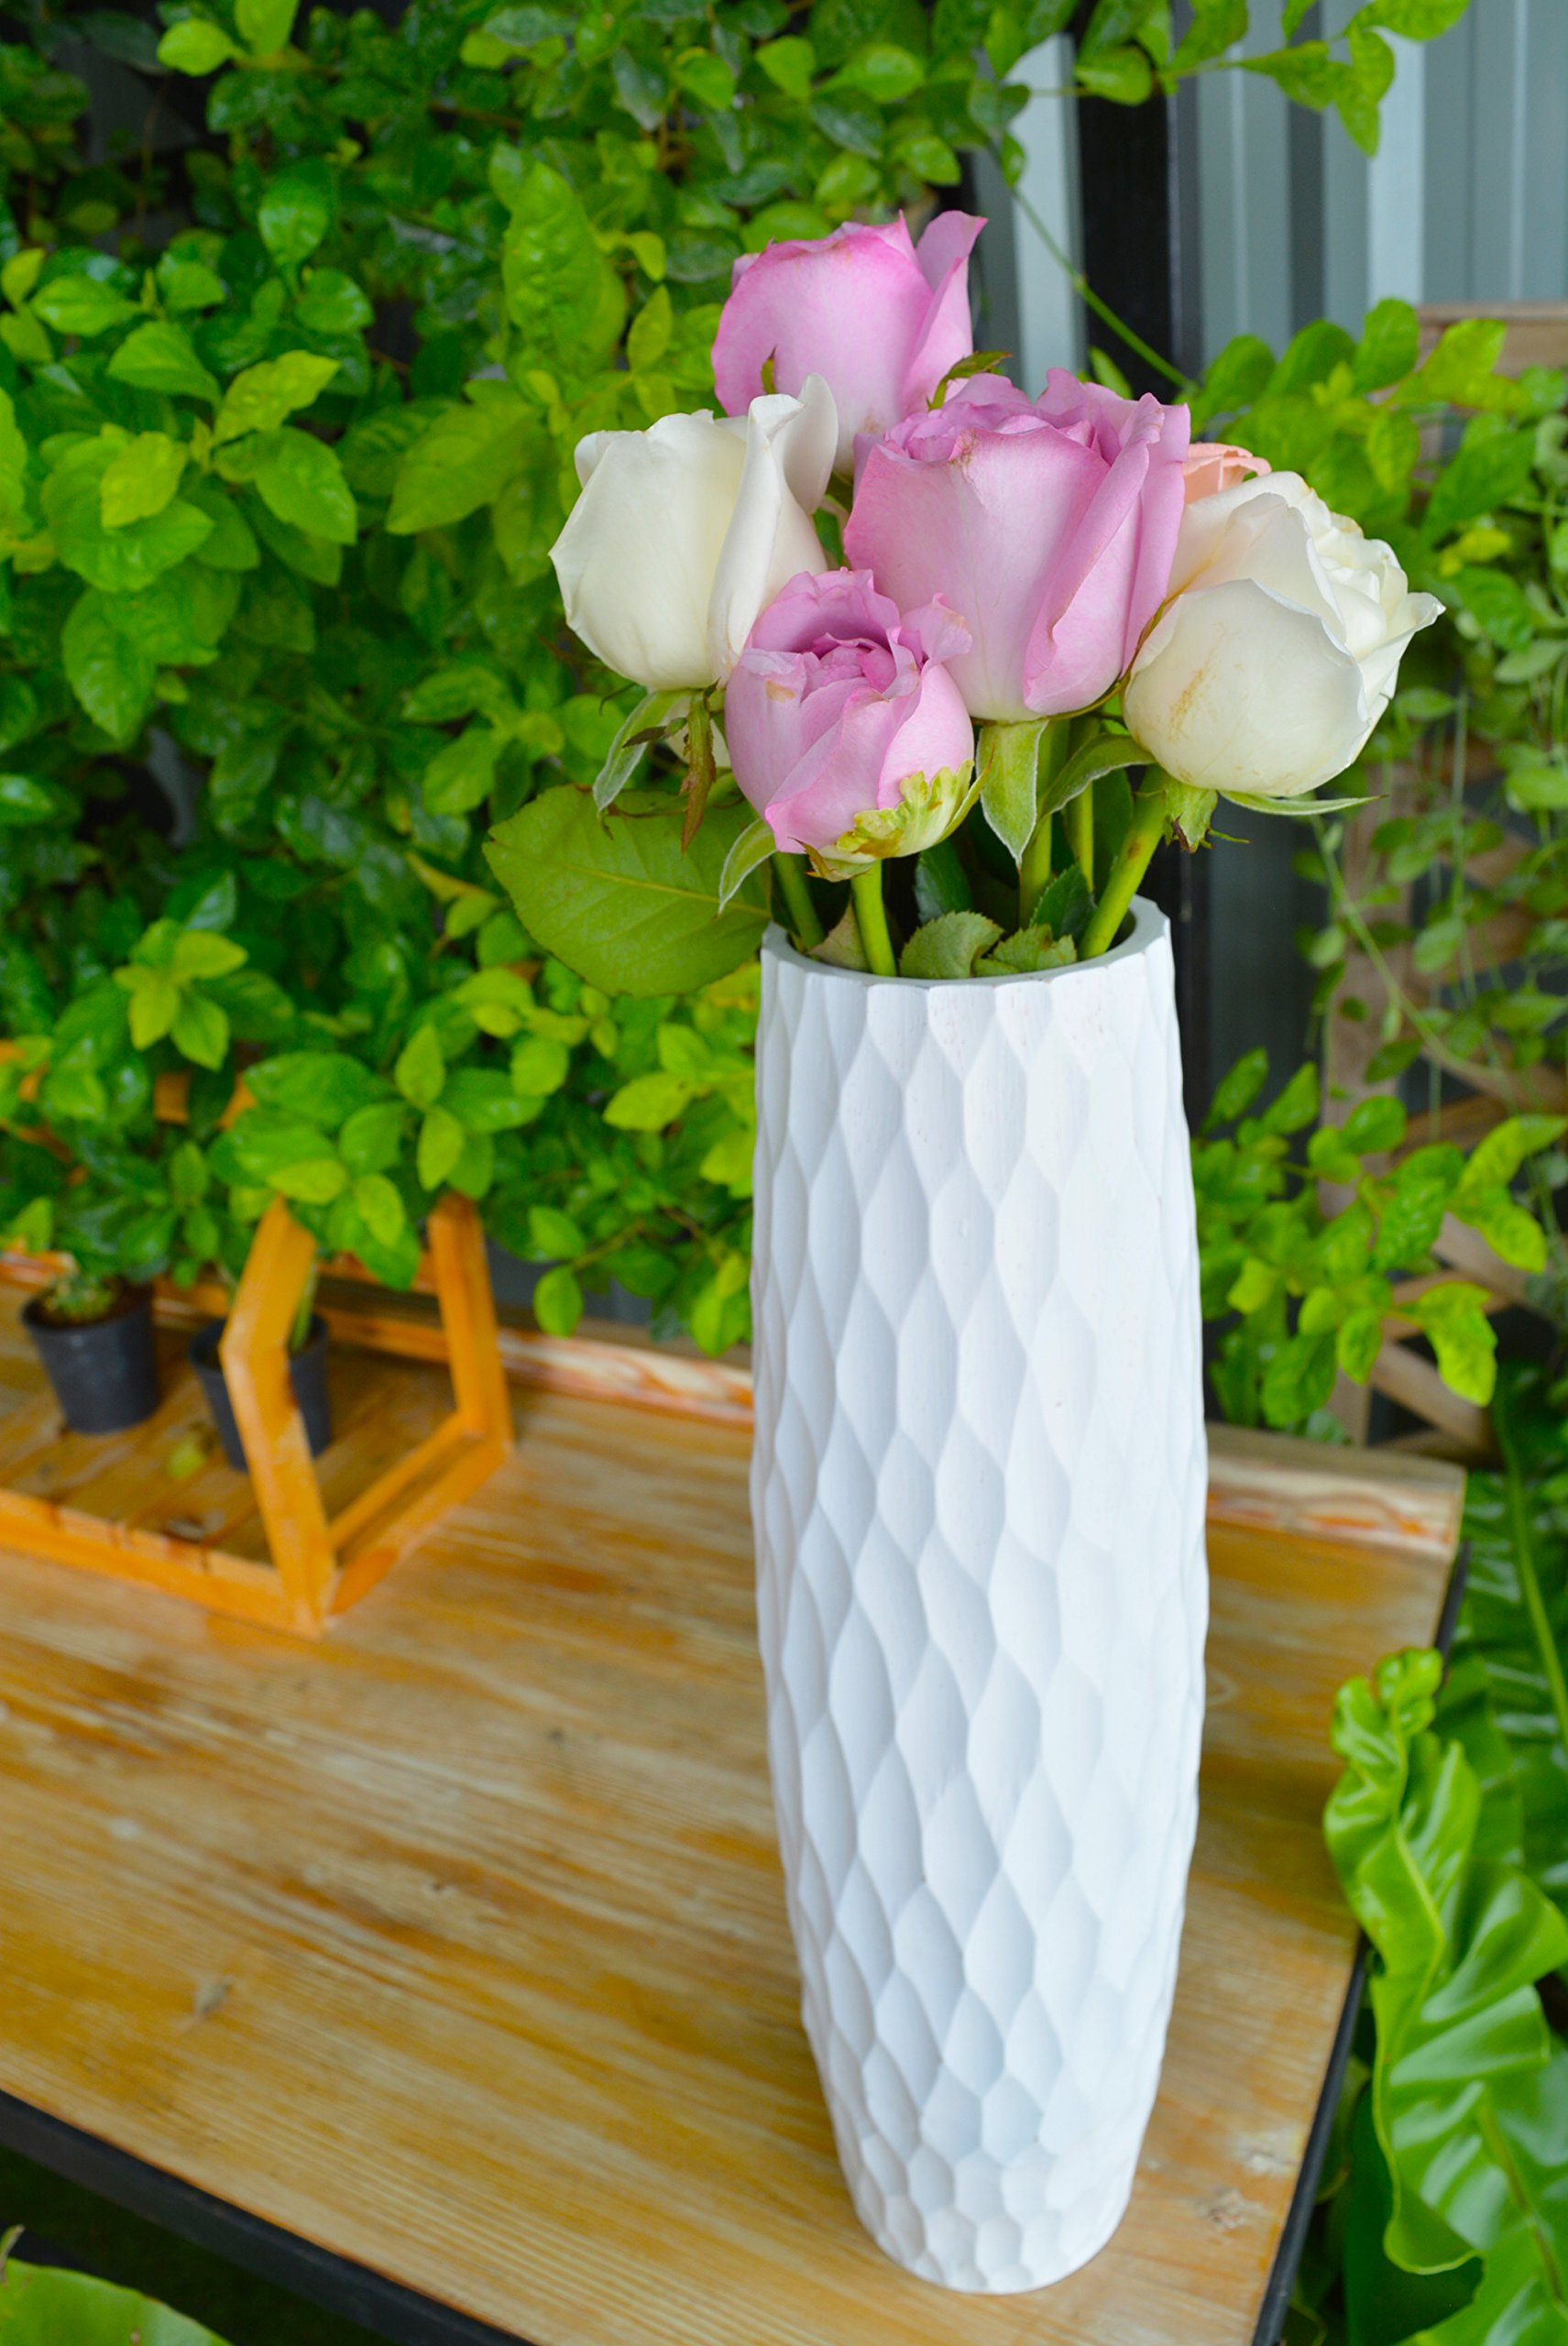 roro Handcarved Textured Rippled Wood Vase, 14 Inch, Pearly White - 14 Inch tall x 3 diameter (3 inch wide) with pearly white finish 100% hand-carved from a small family workshop Made from a single piece of sustainable orchard wood - no forest trees were cut - vases, kitchen-dining-room-decor, kitchen-dining-room - 81xXwqhfJQL -